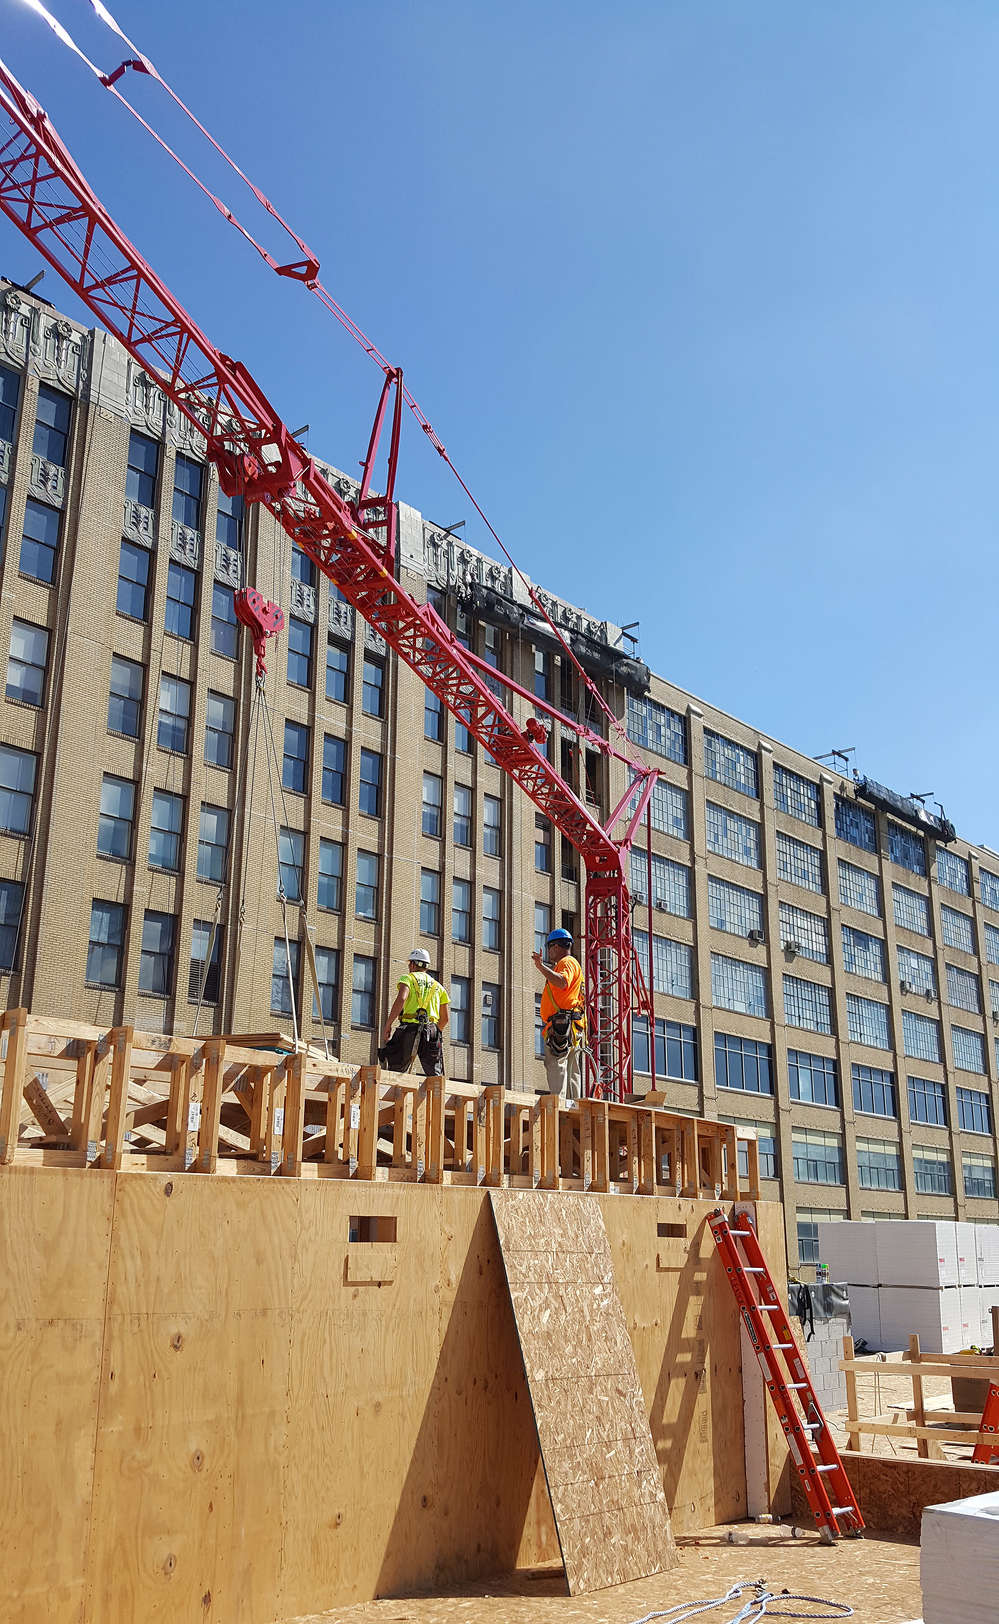 Lenick workers unload roofing materials using Stephenson's Potain T130 tower crane. Using the Potain tower cranes on the Hanover at North Broad Project is projected to save Lenick close to 50 percent in costs and man-hours over using traditional hydraulic cranes.